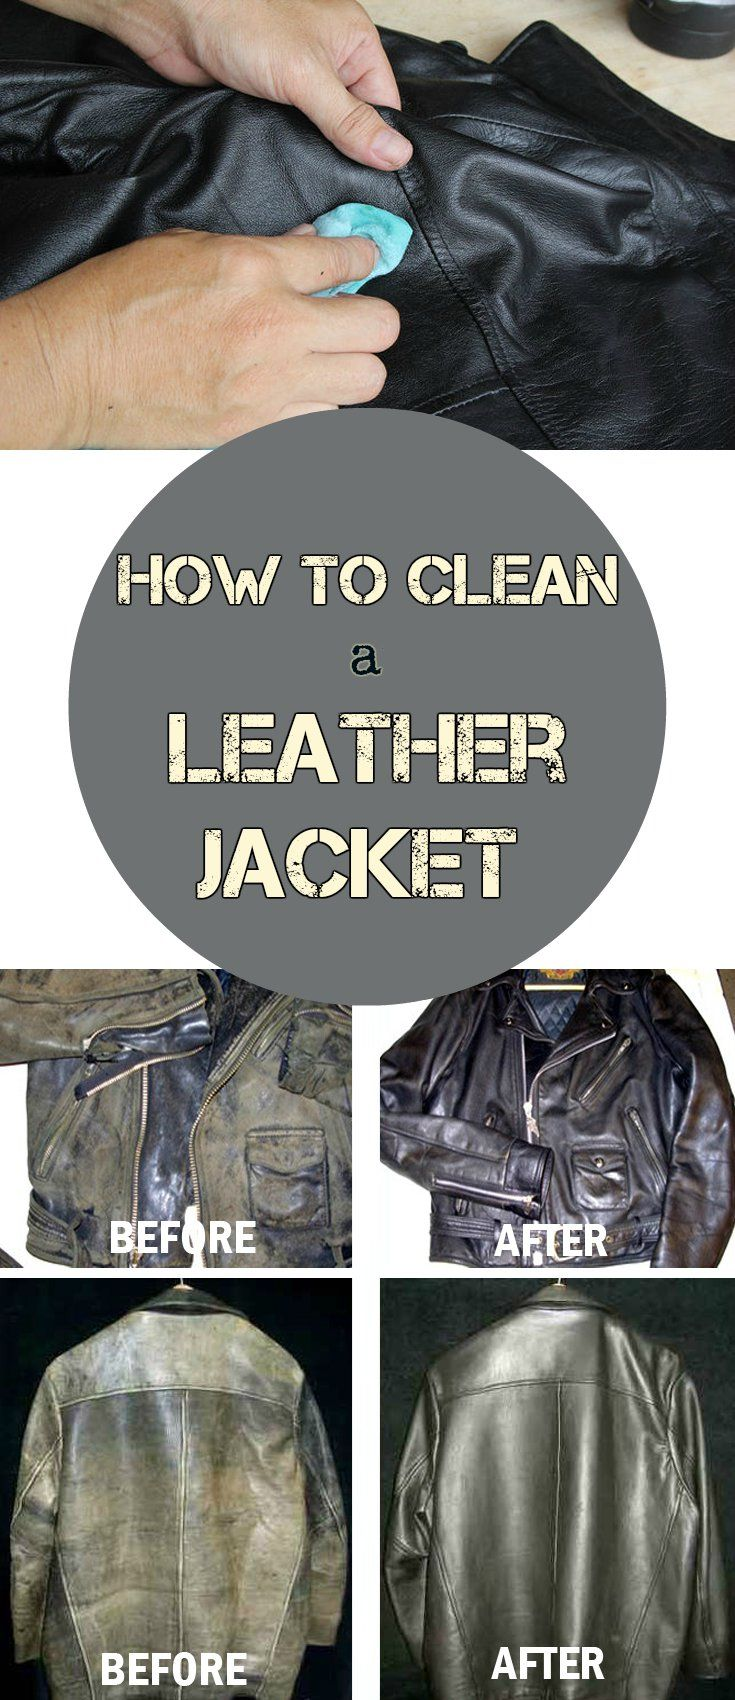 How to Clean a Leather Jacket